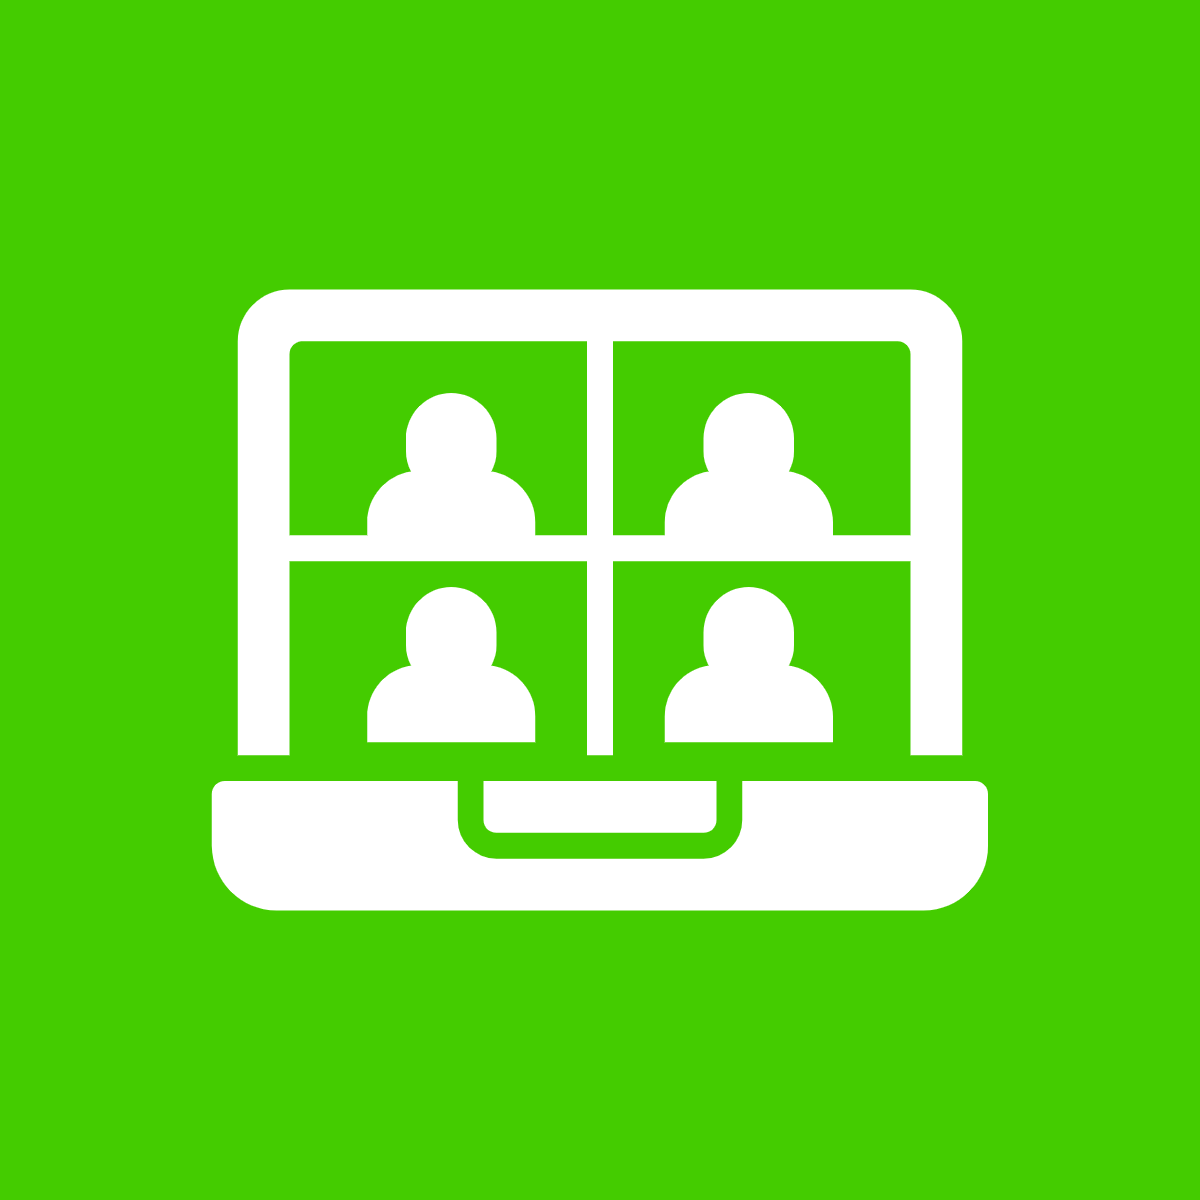 Graphic illustration of 4 people on a video call